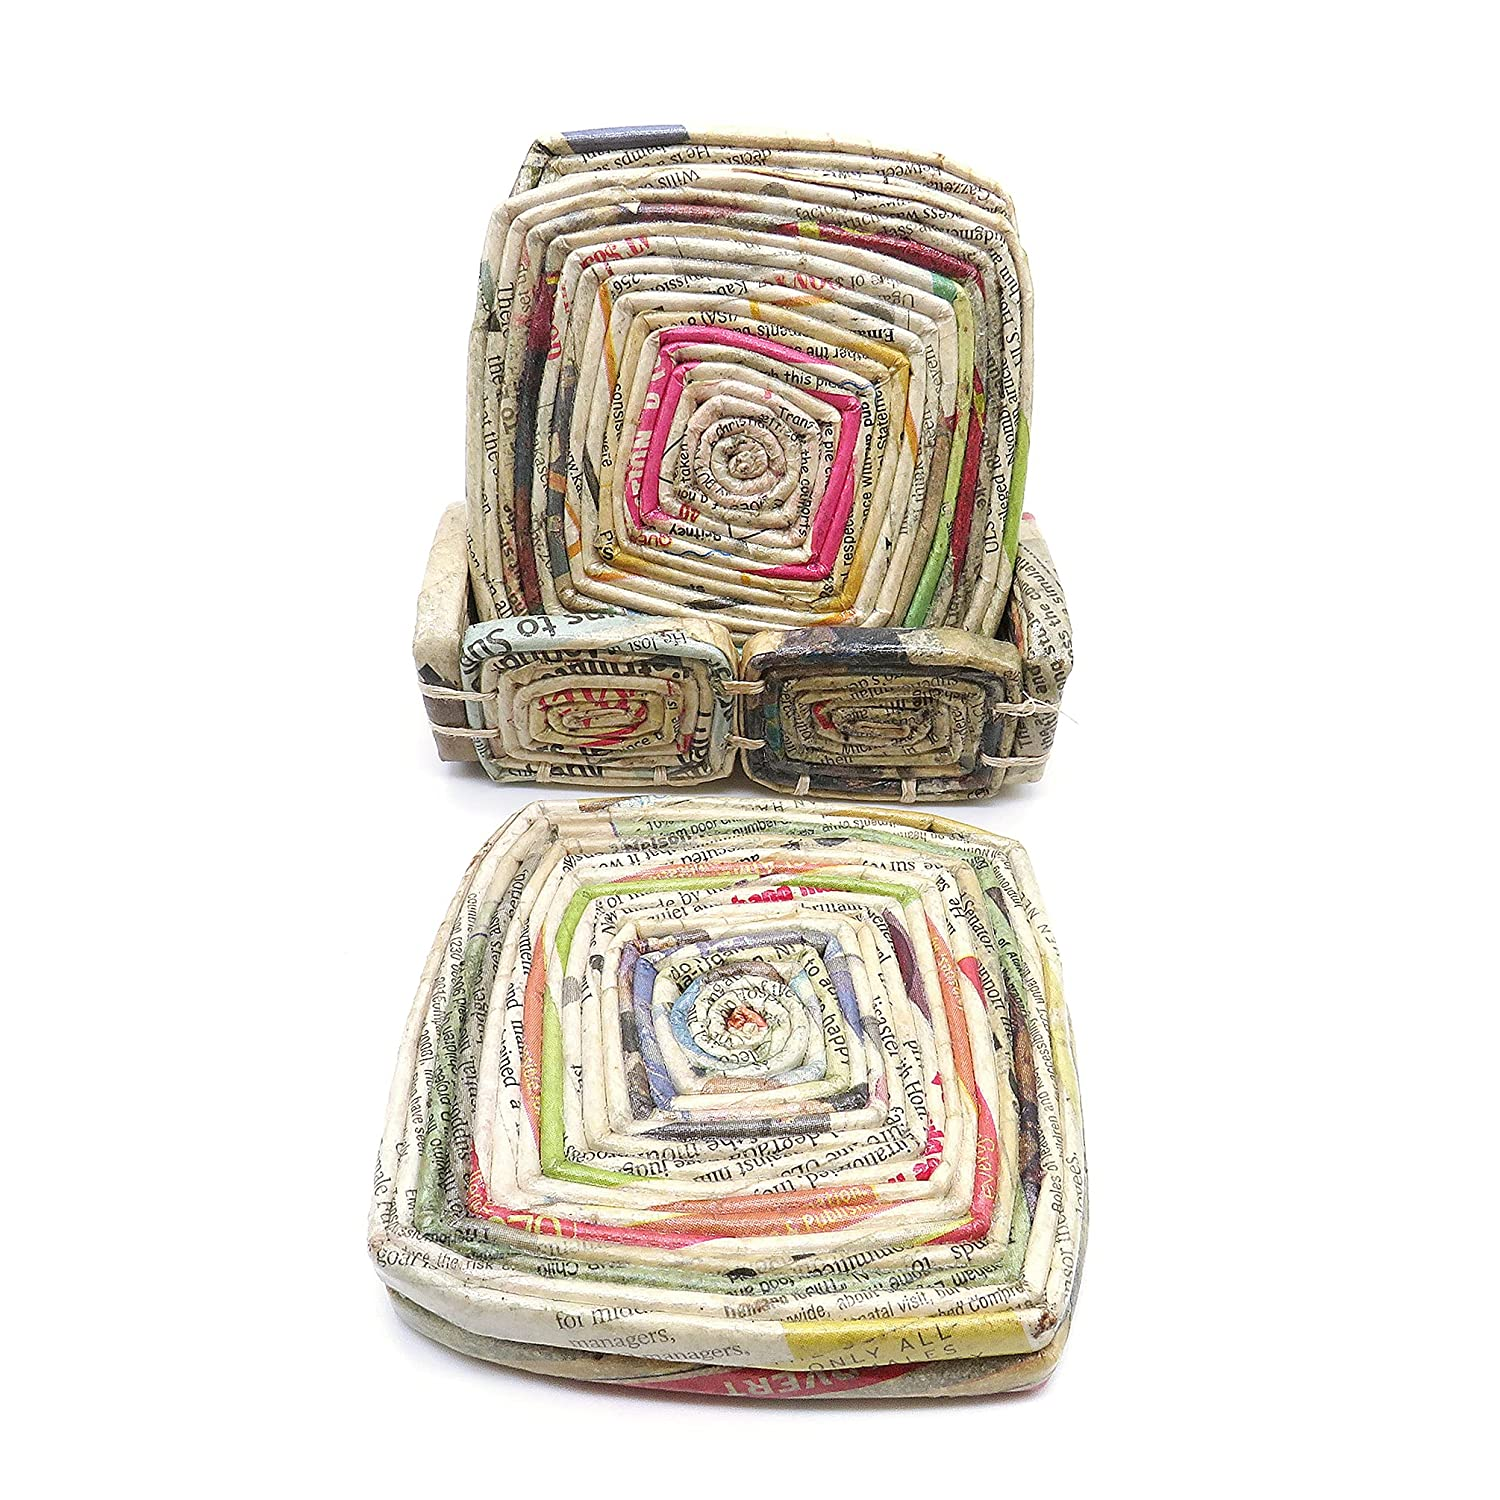 Rolled Paper Handmade Free Shipping New Coasters by - Outreach Coas quality assurance Uganda Artisan